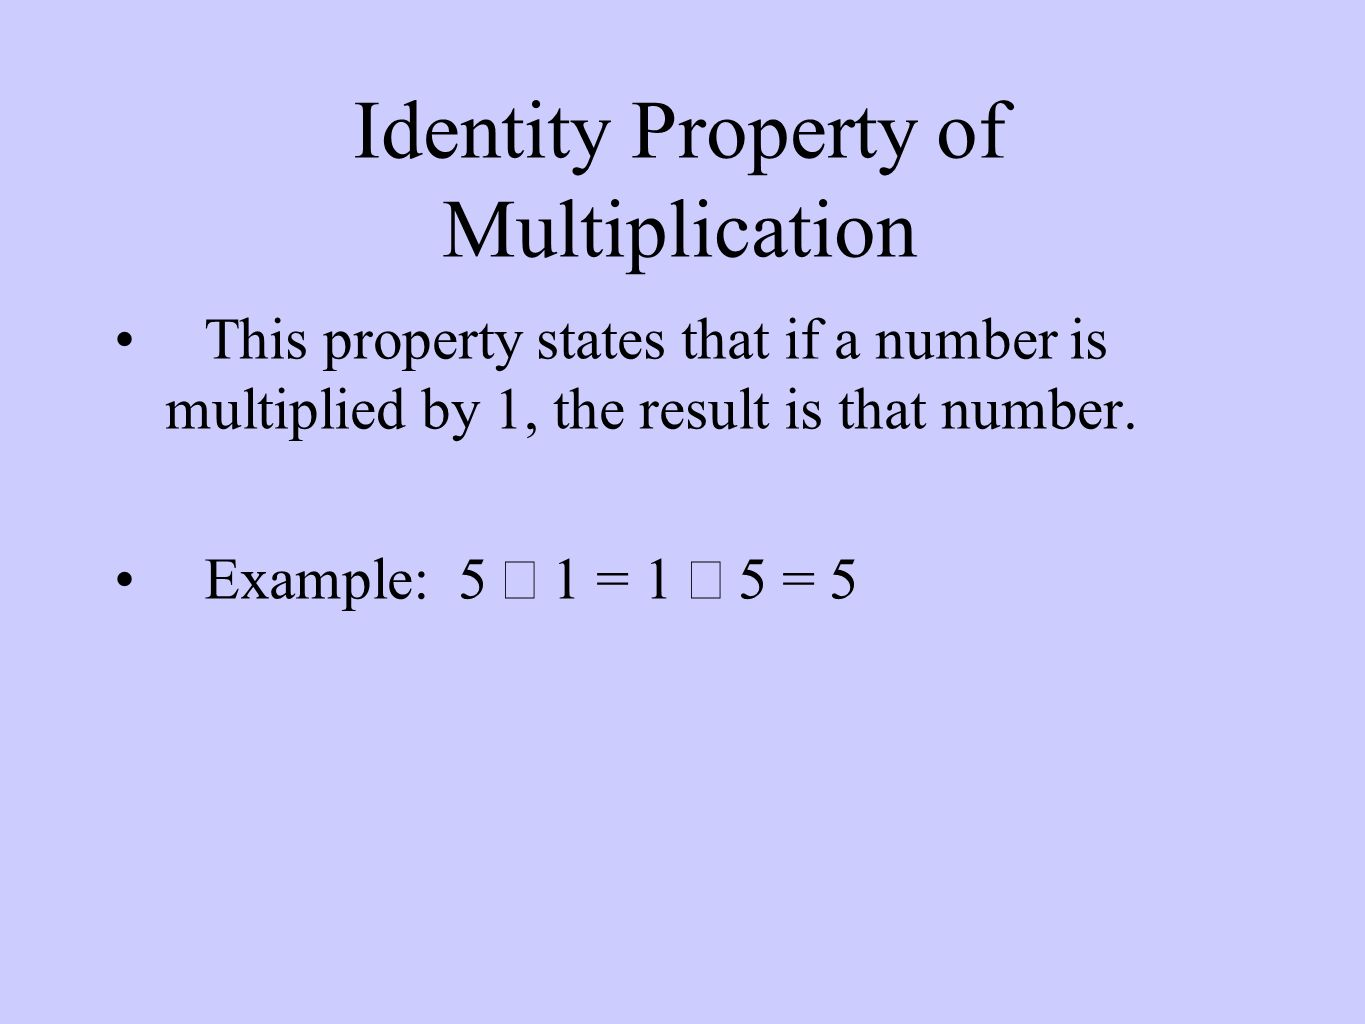 Identity Property of Multiplication This property states that if a number is multiplied by 1, the result is that number.